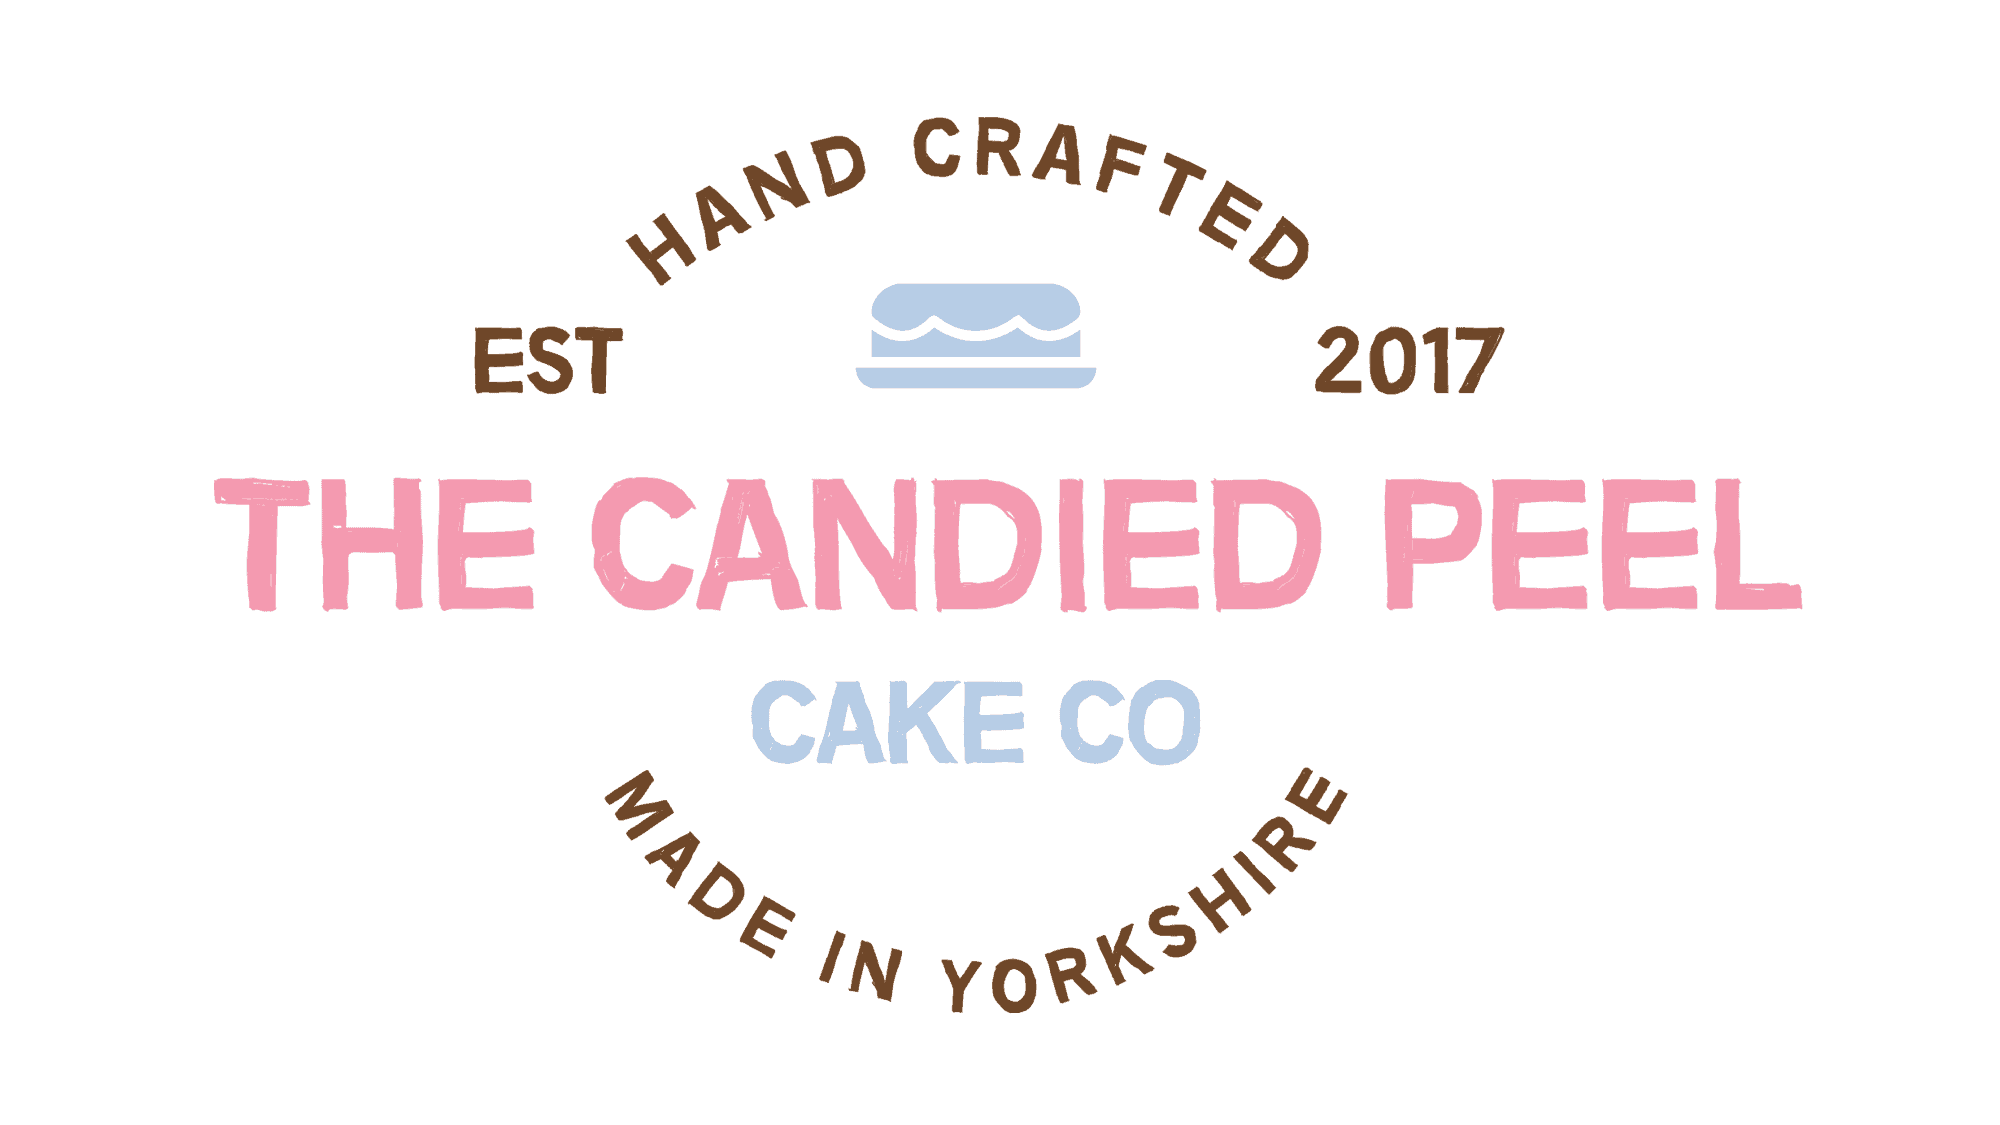 The Candied Peel Cake Co